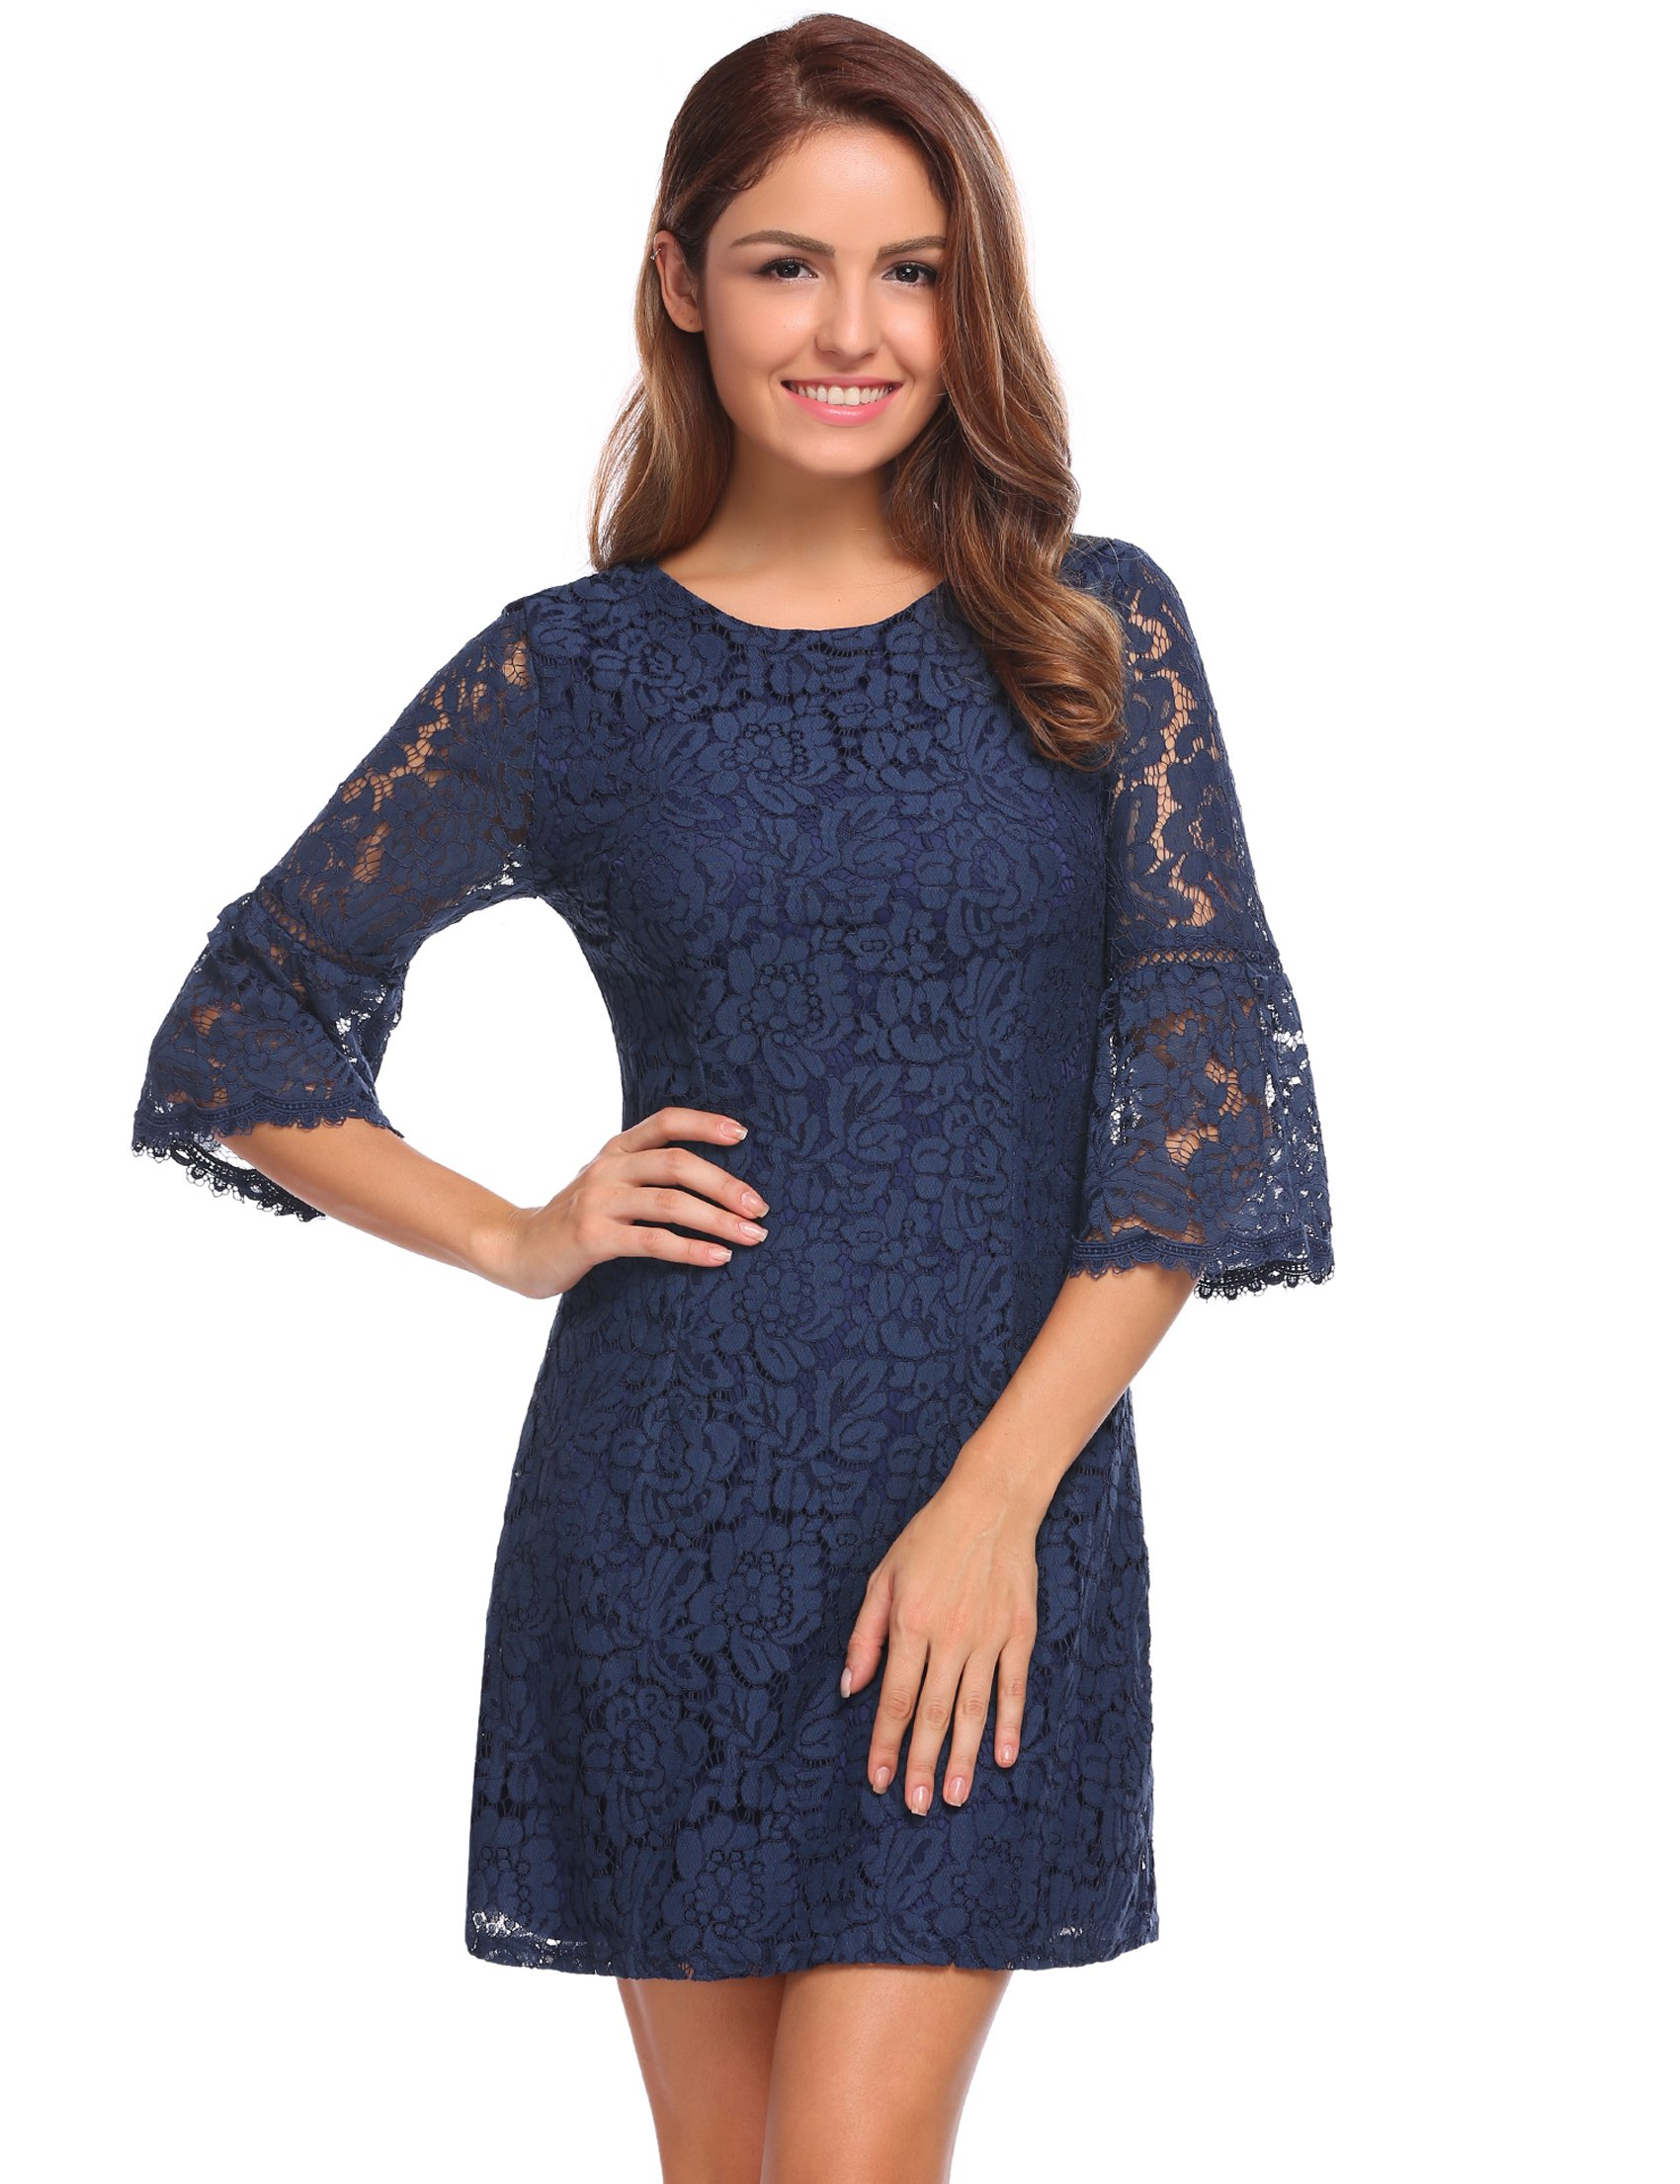 Zeagoo Women's 3/4 Flare Sleeve Chic Floral Lace A-line Cocktail Family Party Dress (Medium, Navy Blue)